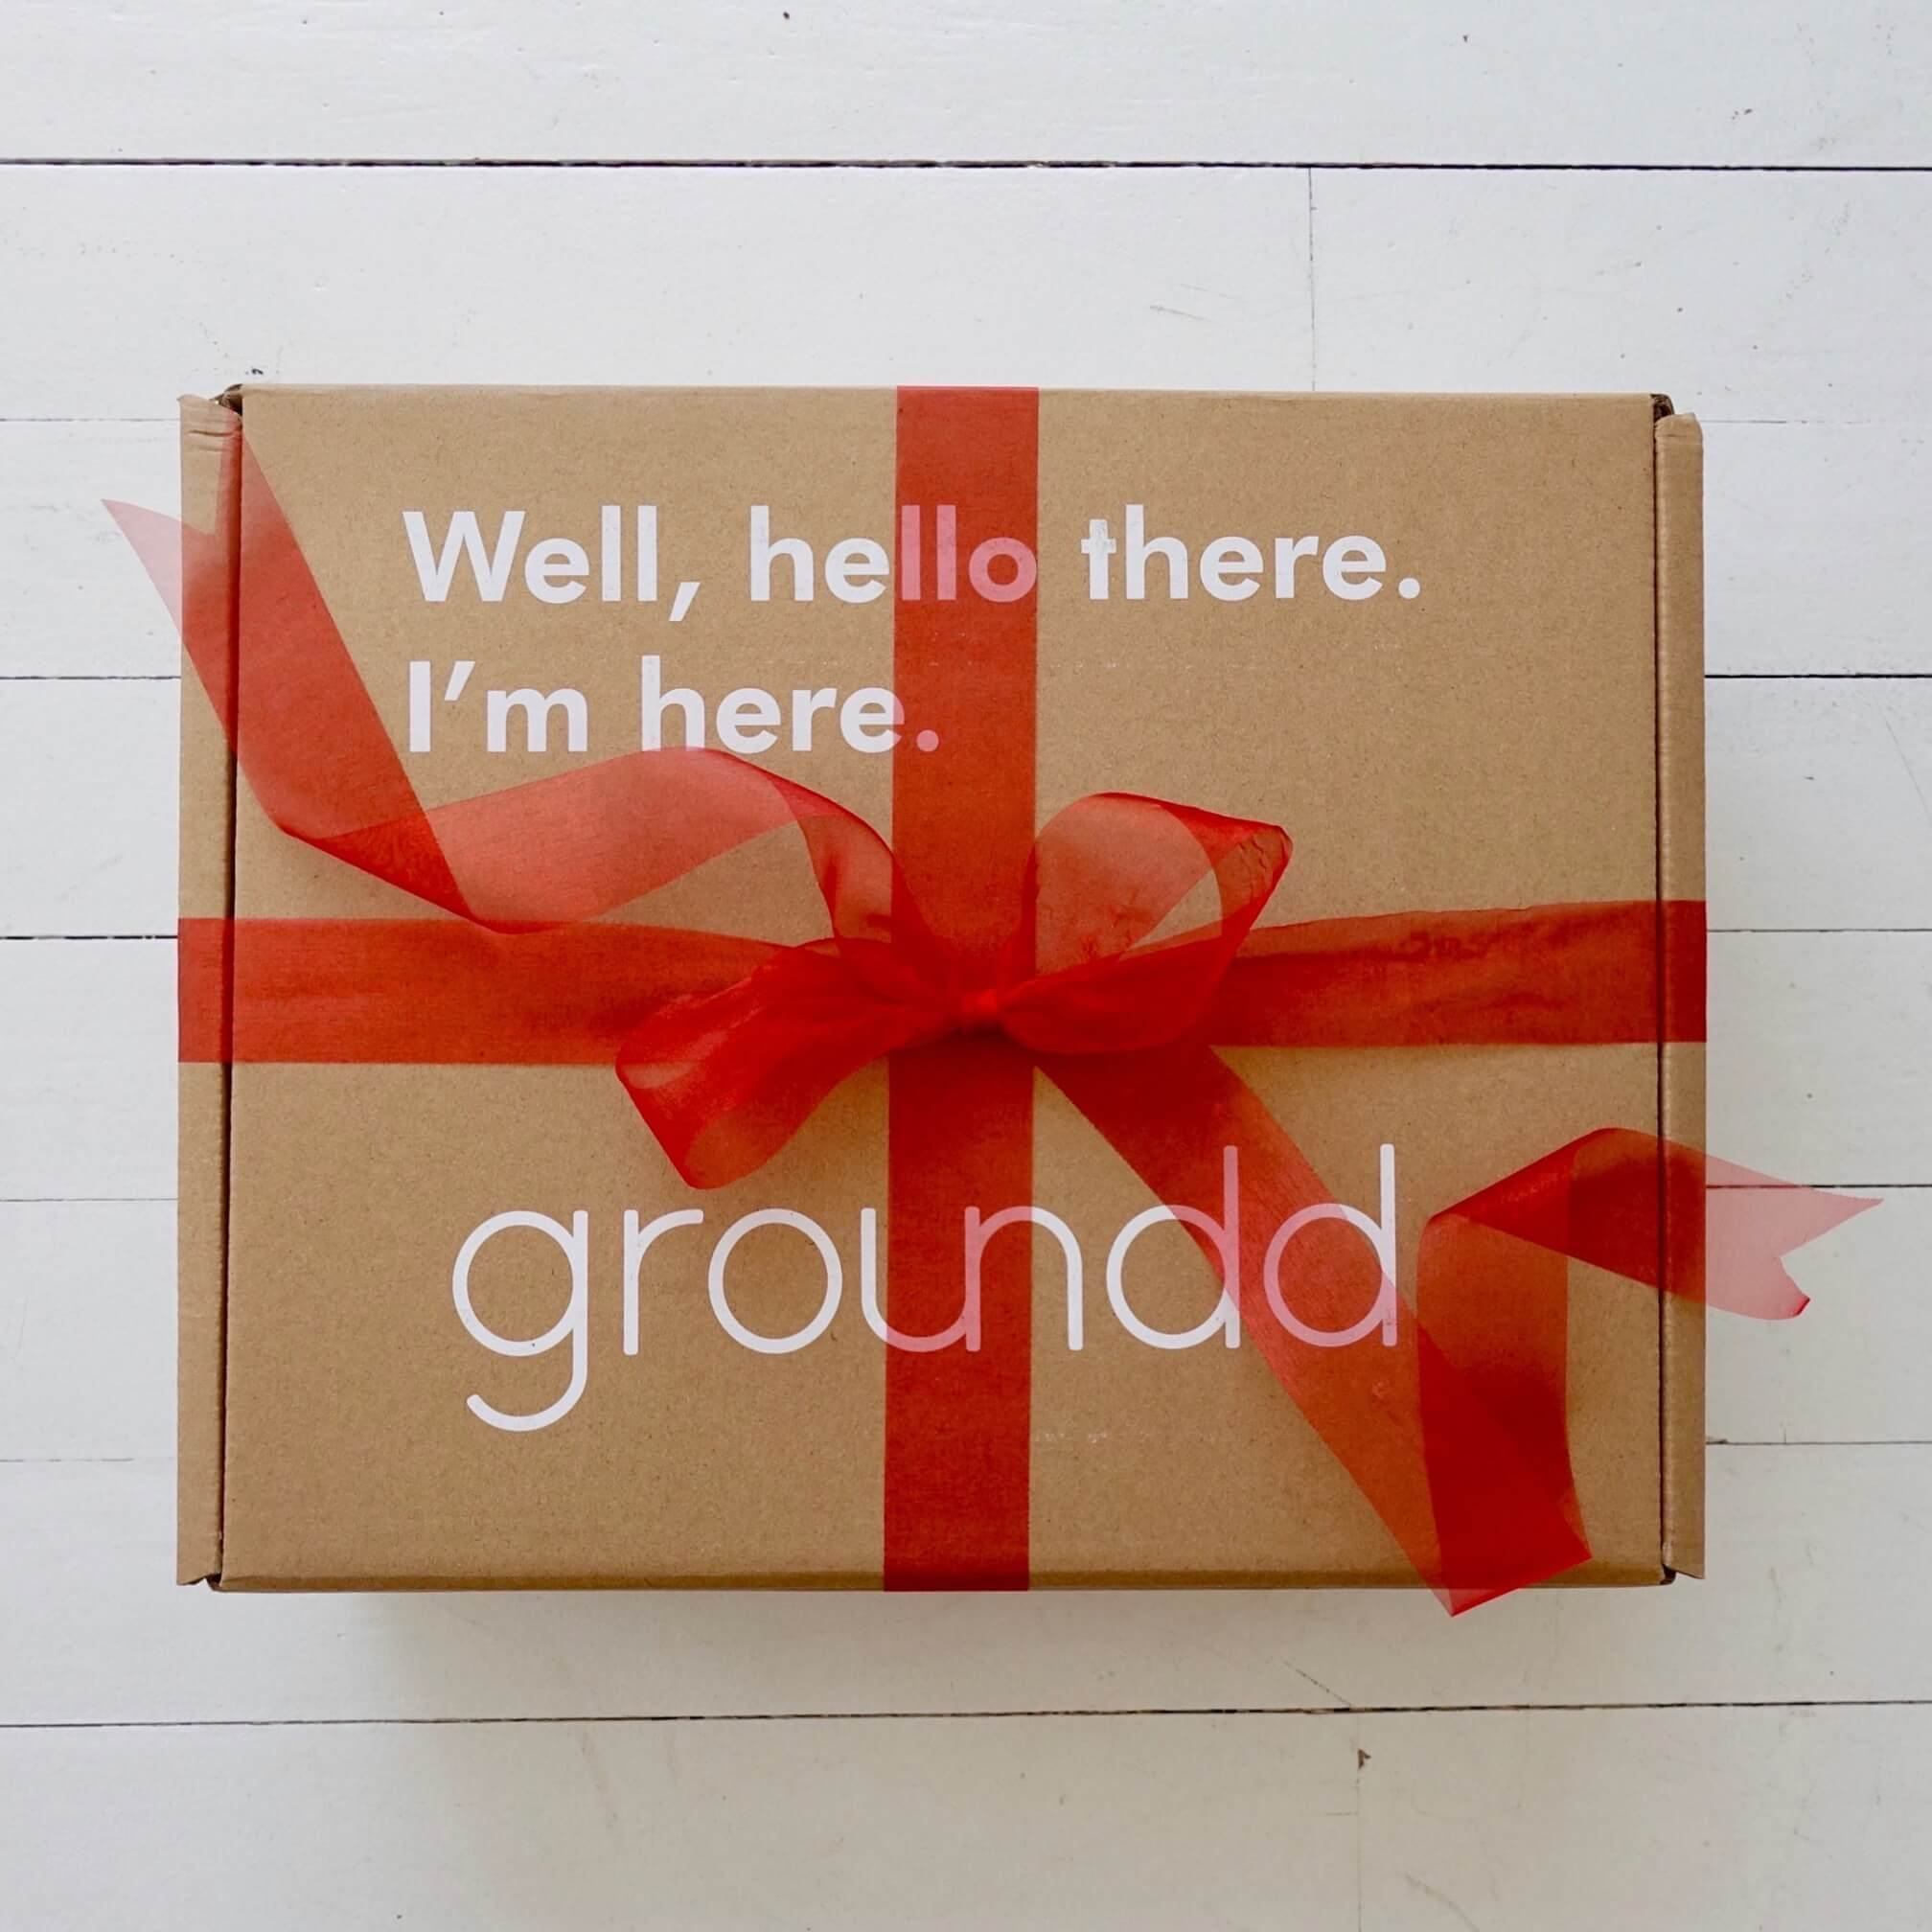 Groundd weighted blanket in box gift